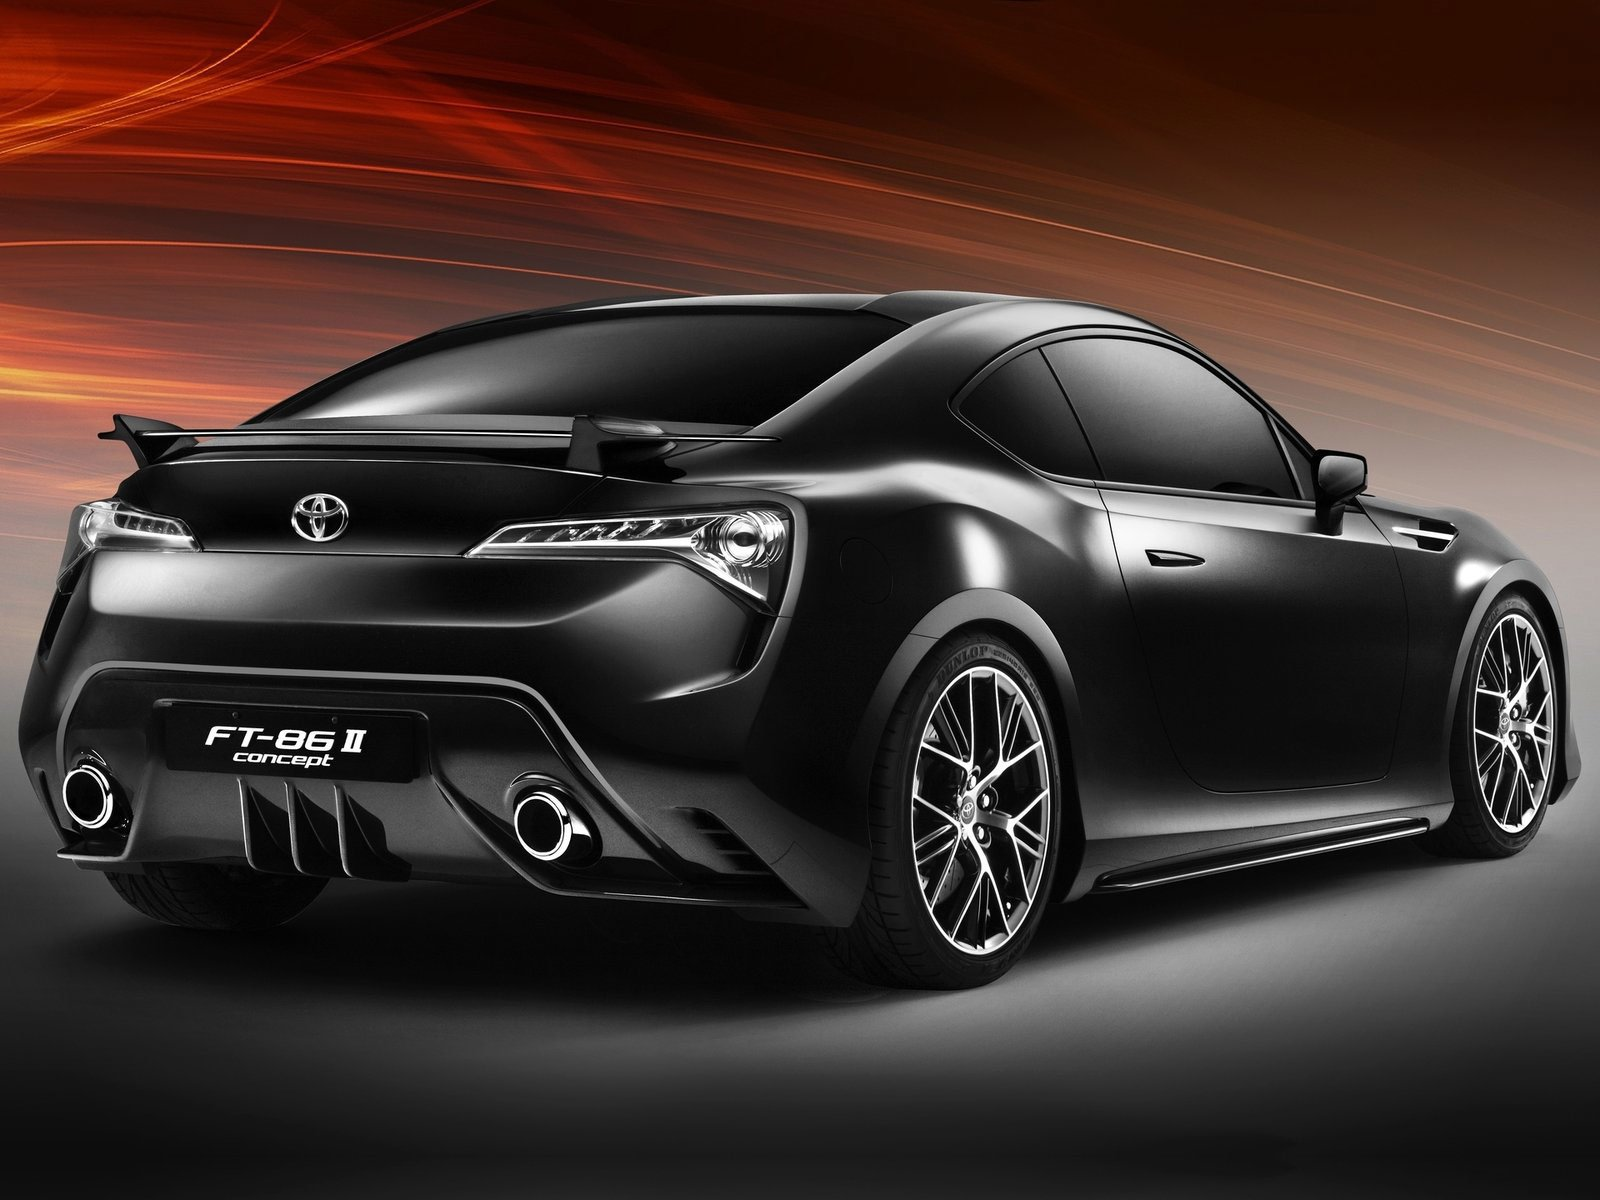 Latest 2011 Toyota Ft 86 Ii Concept Japanese Car Photos Free Download